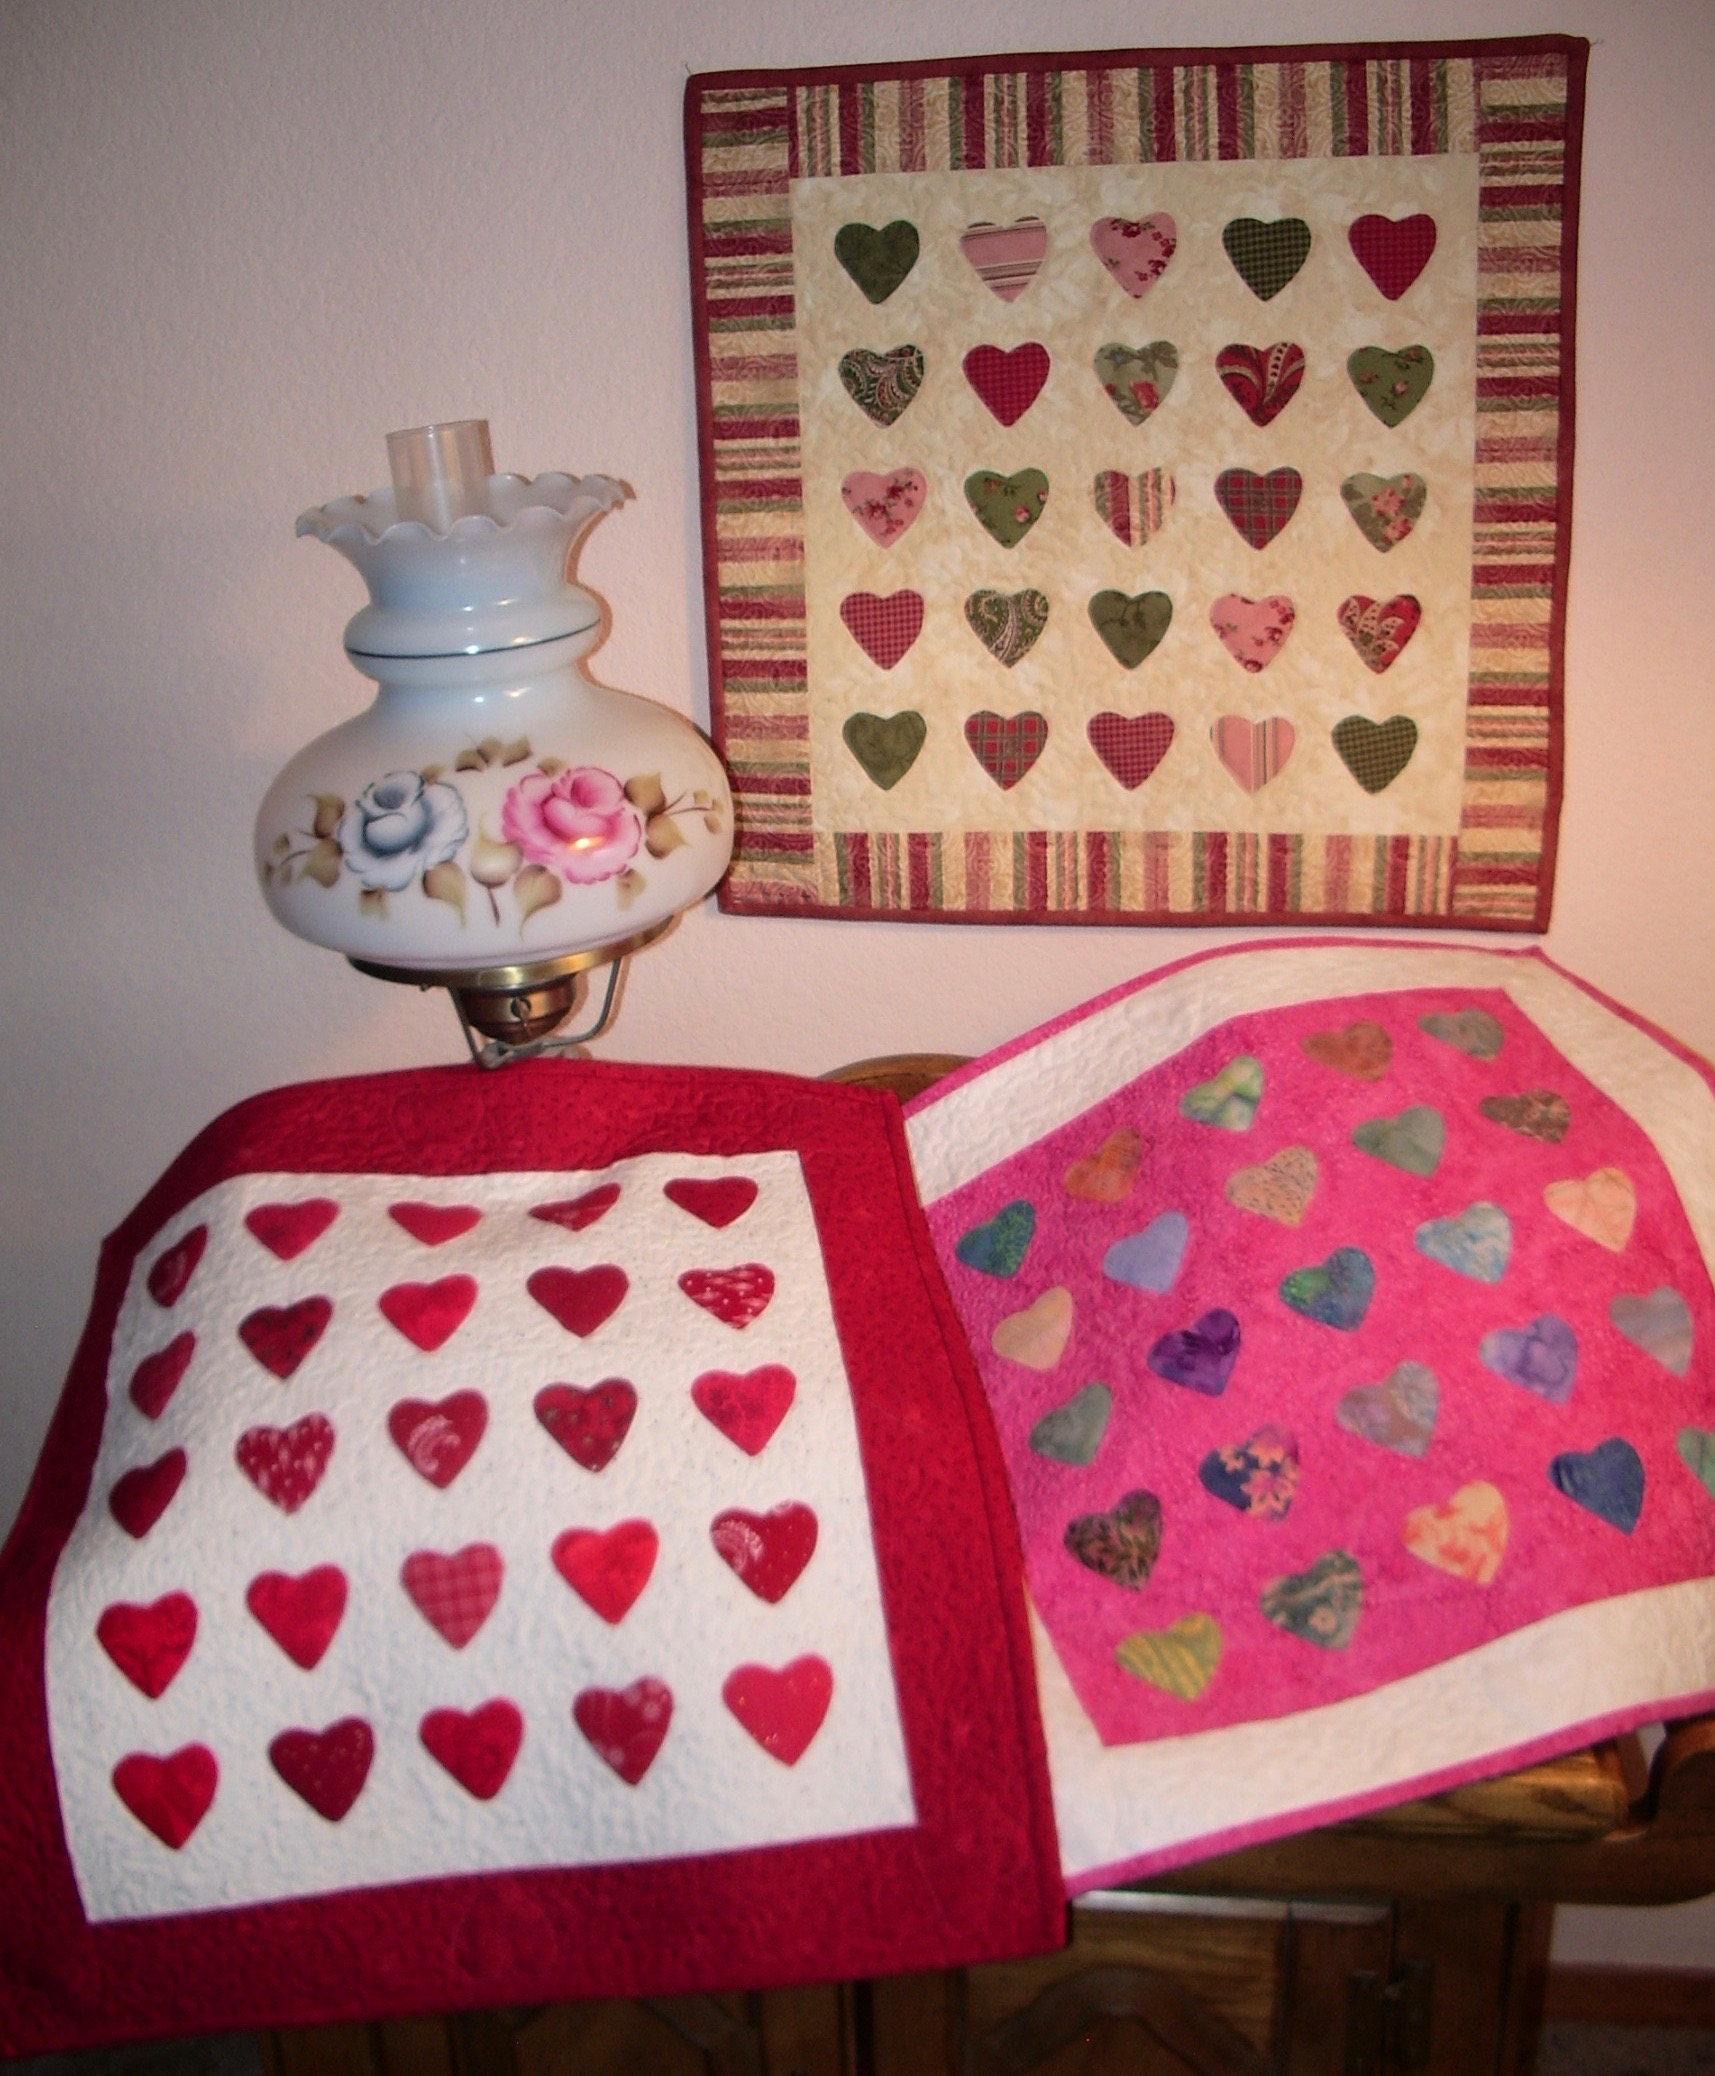 Joyful Hearts by Trinity Designs